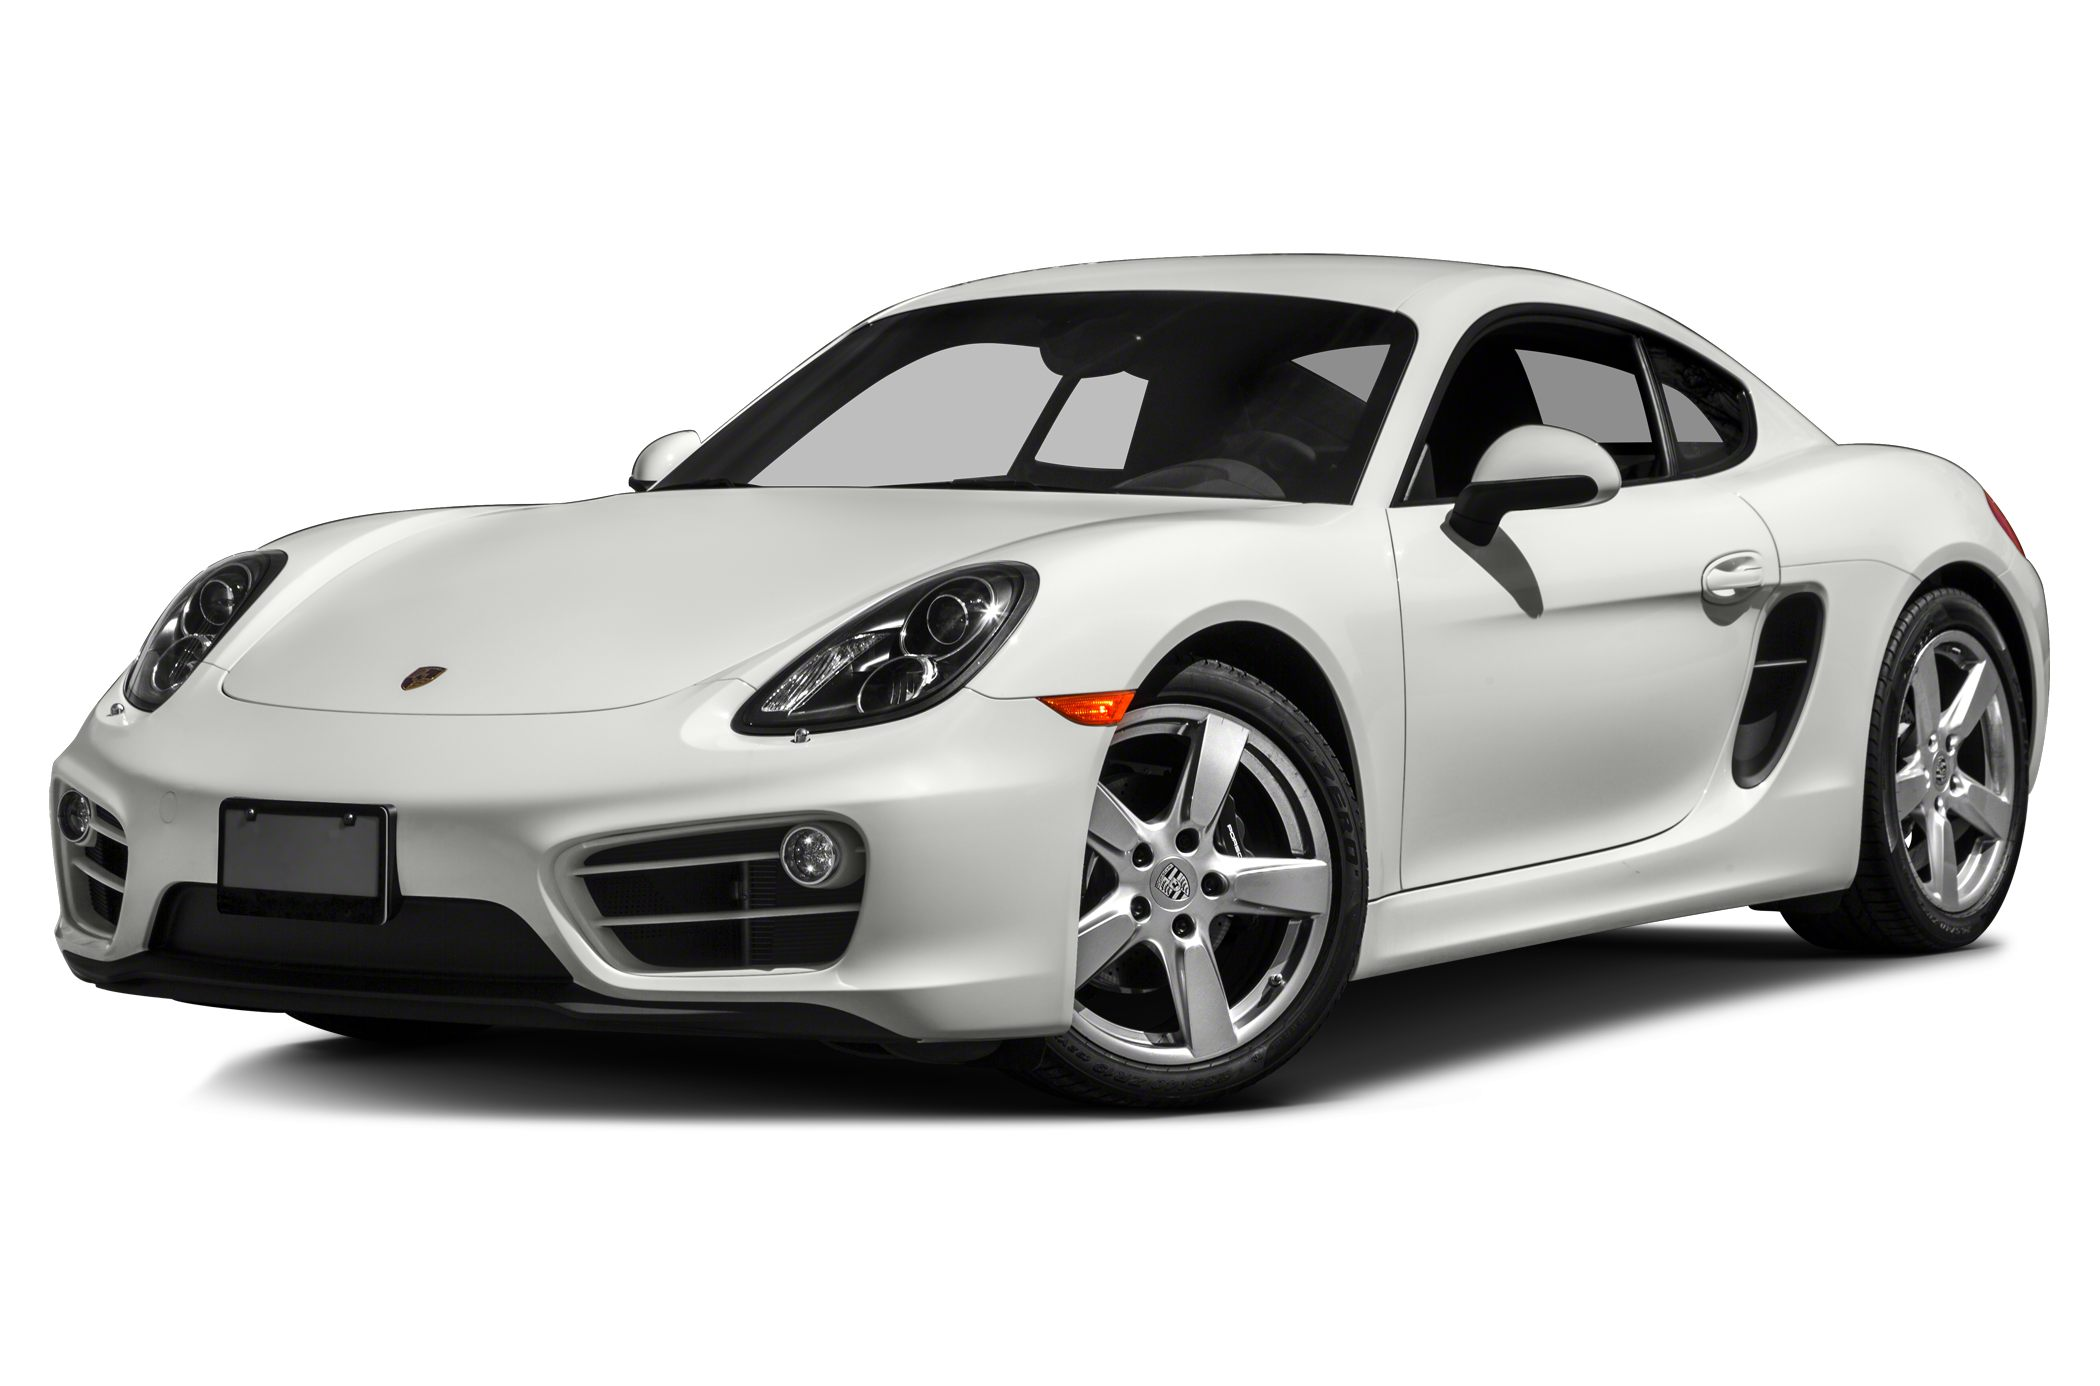 Porsche Cayman News, Photos and Buying Information - Autoblog